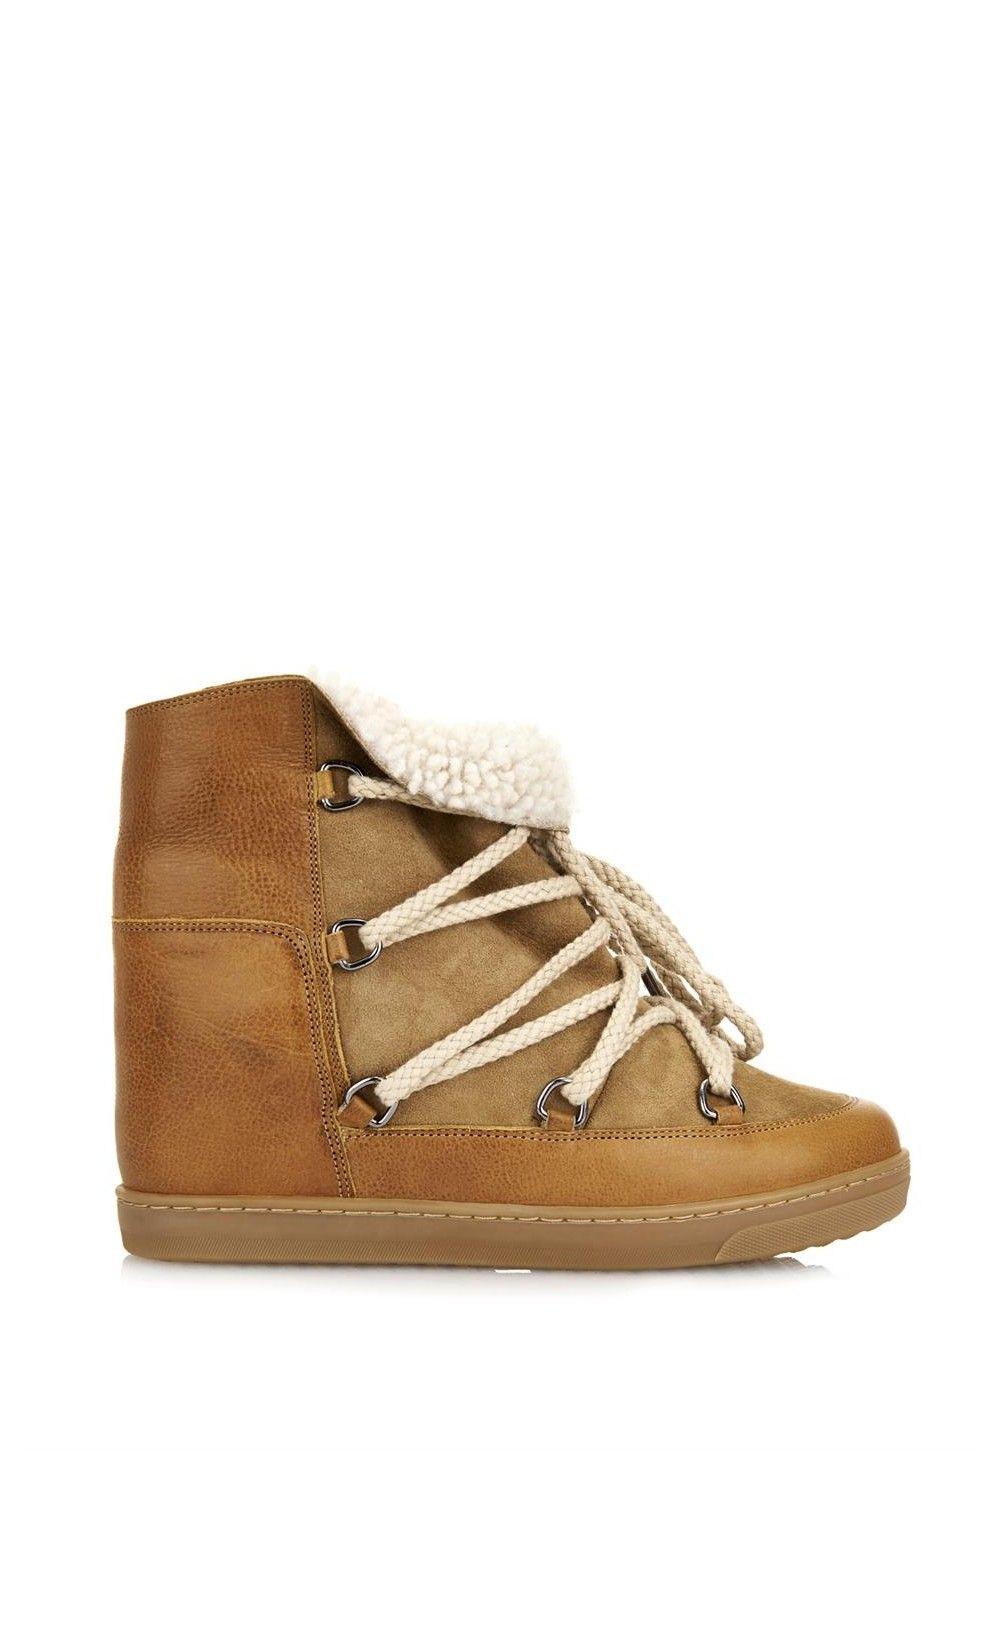 ad952c799ca Isabel Marant Nowles Shearling-Lined Leather Concealed Wedge Boots Camel - Isabel  Marant #IM #boots #fashion #leather #lifestyle